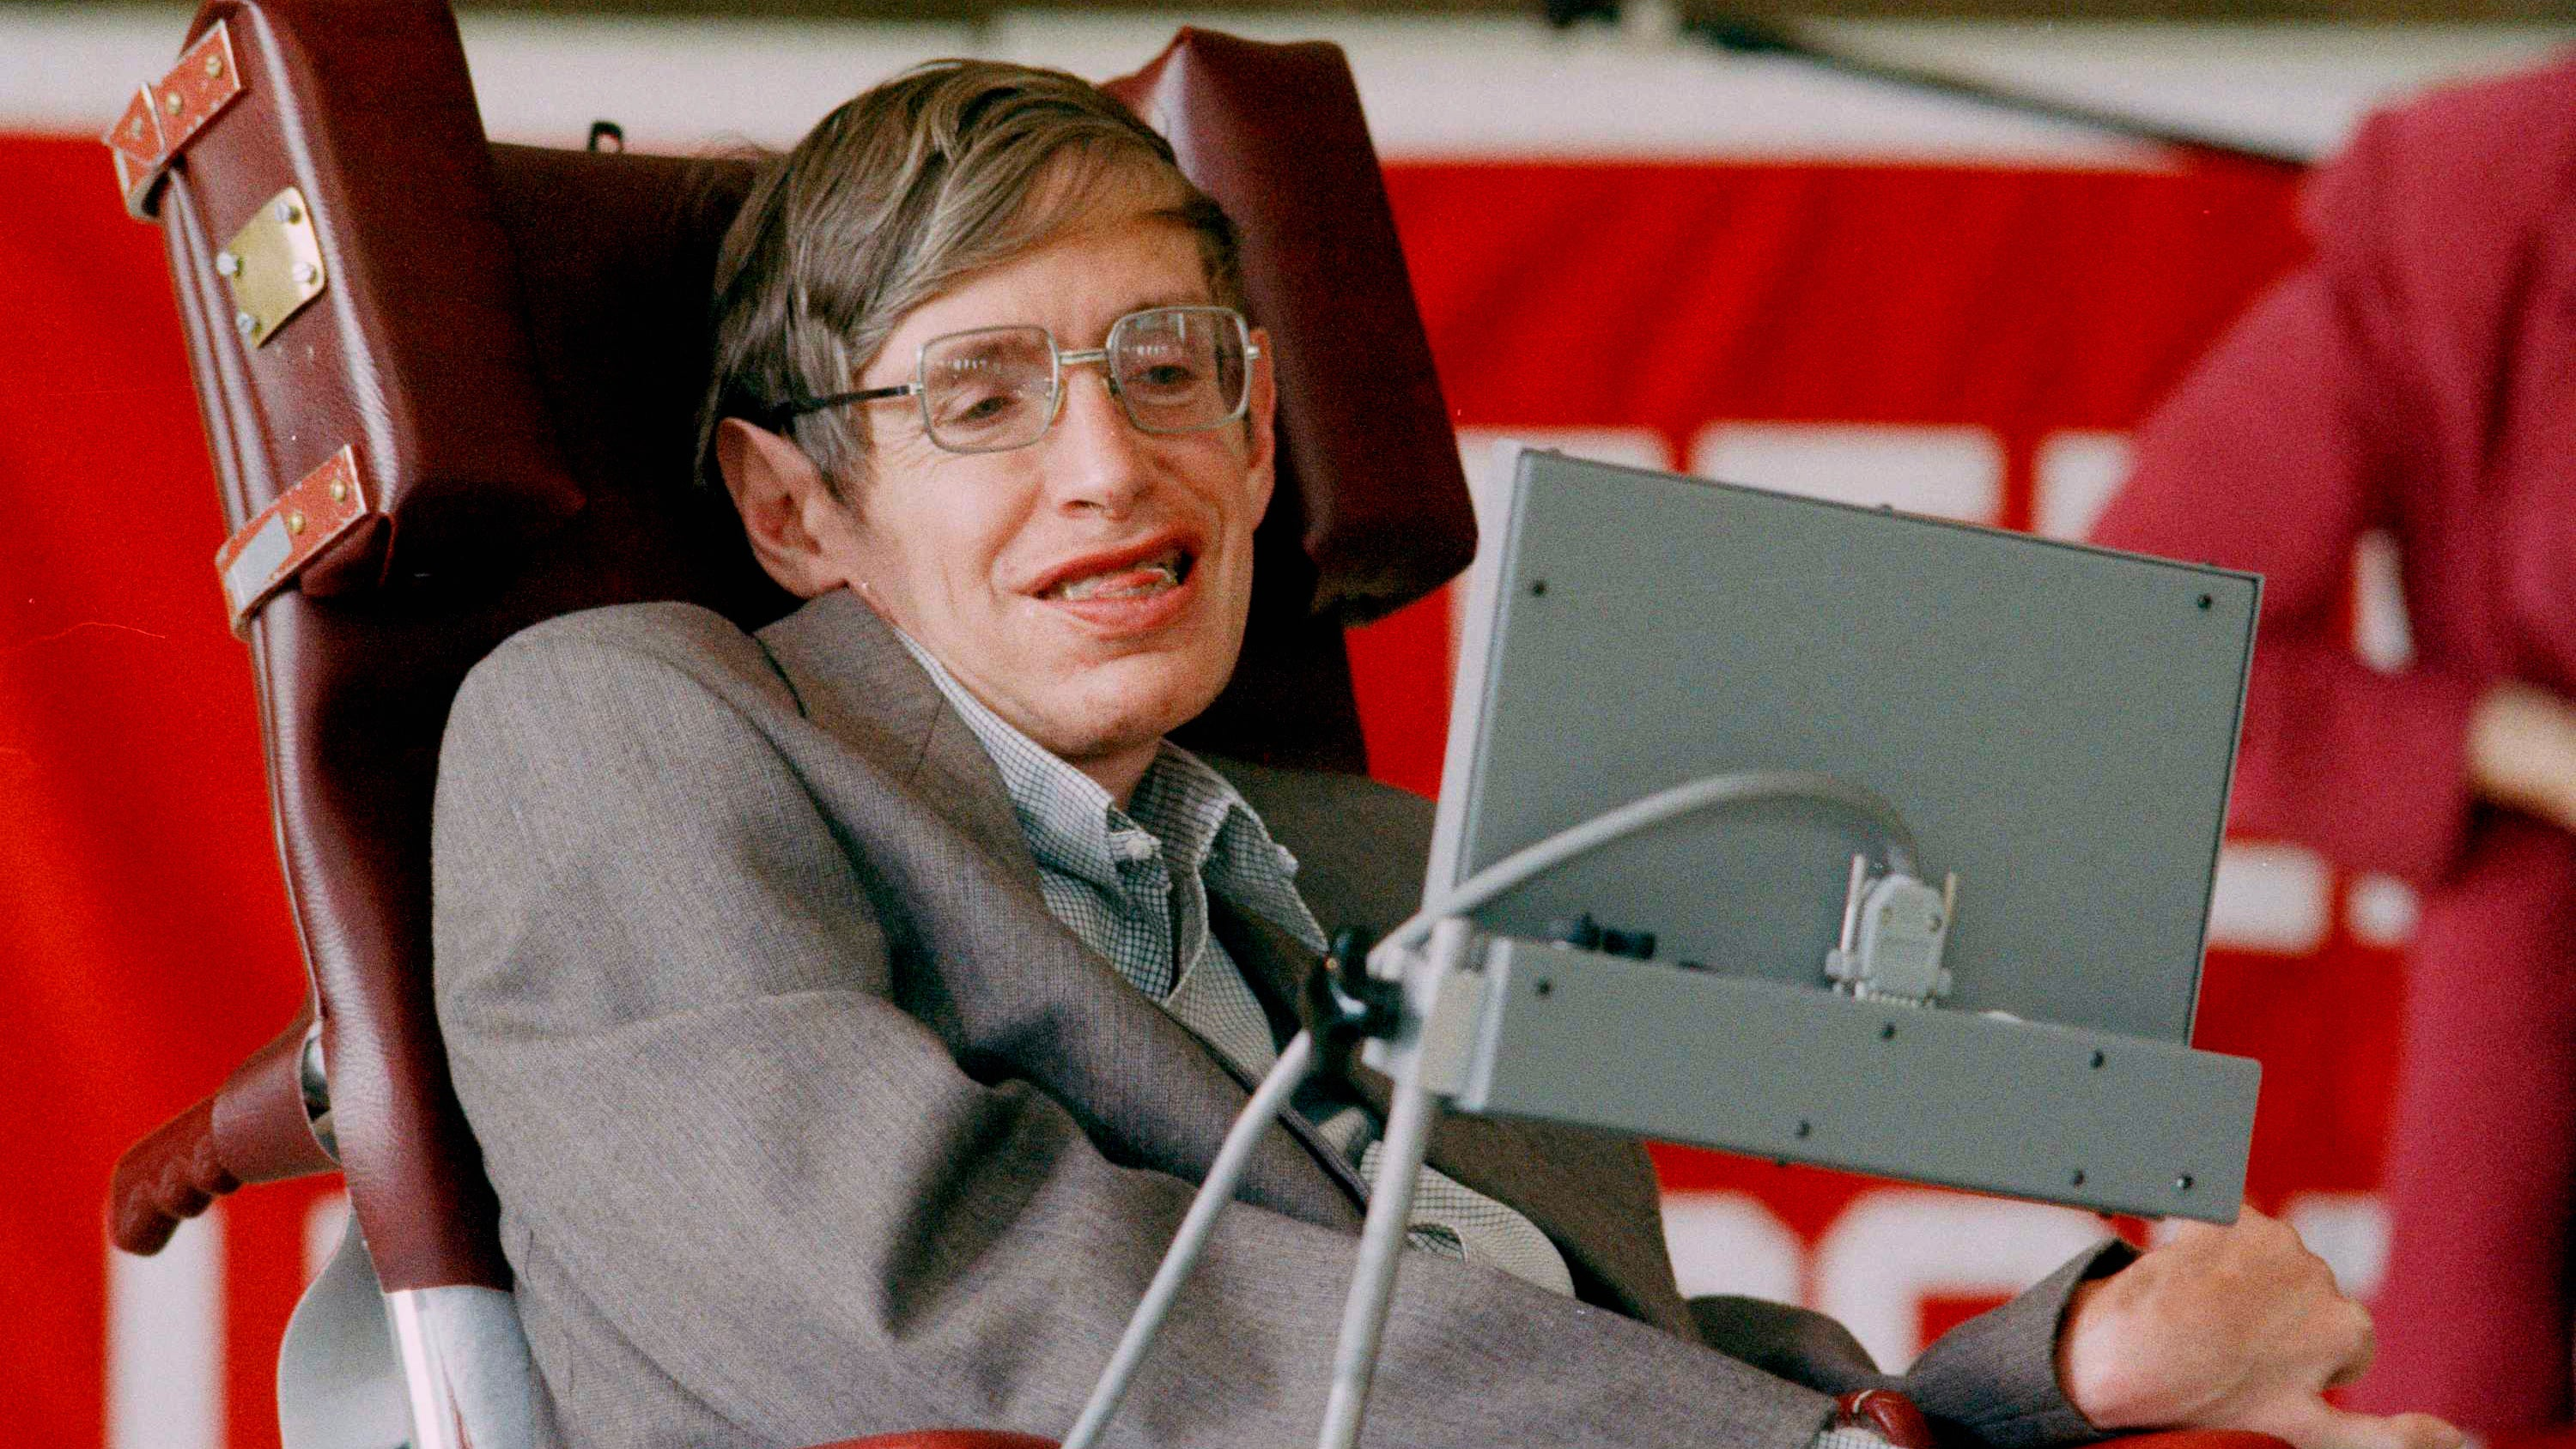 astronomy cosmology eternal-inflation inflation multiverse multiverse-theory quantum-mechanics space stephen-hawking